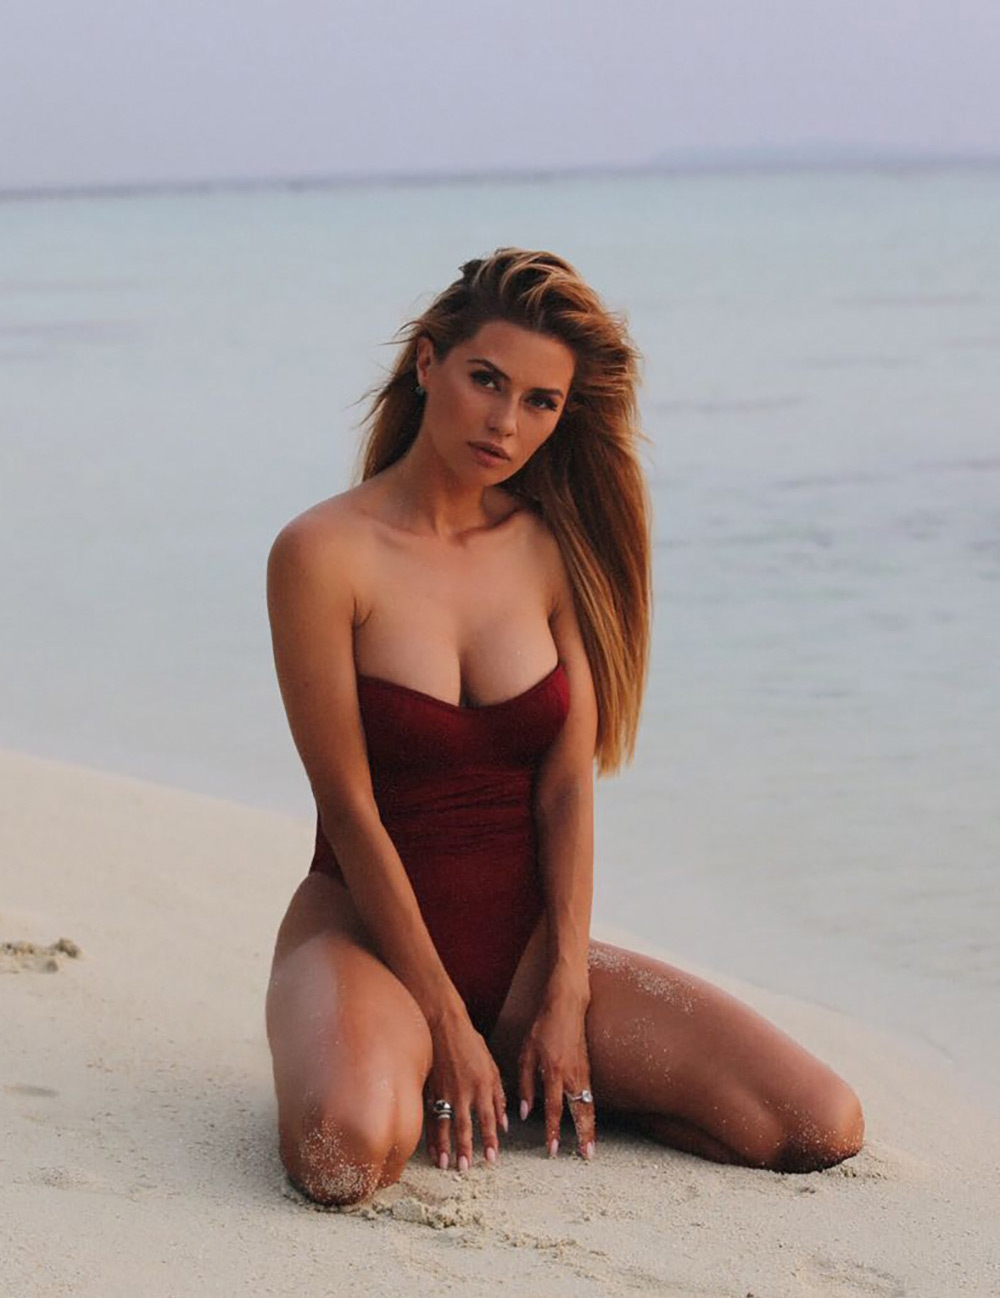 Tigelle - Maldives photoshoot